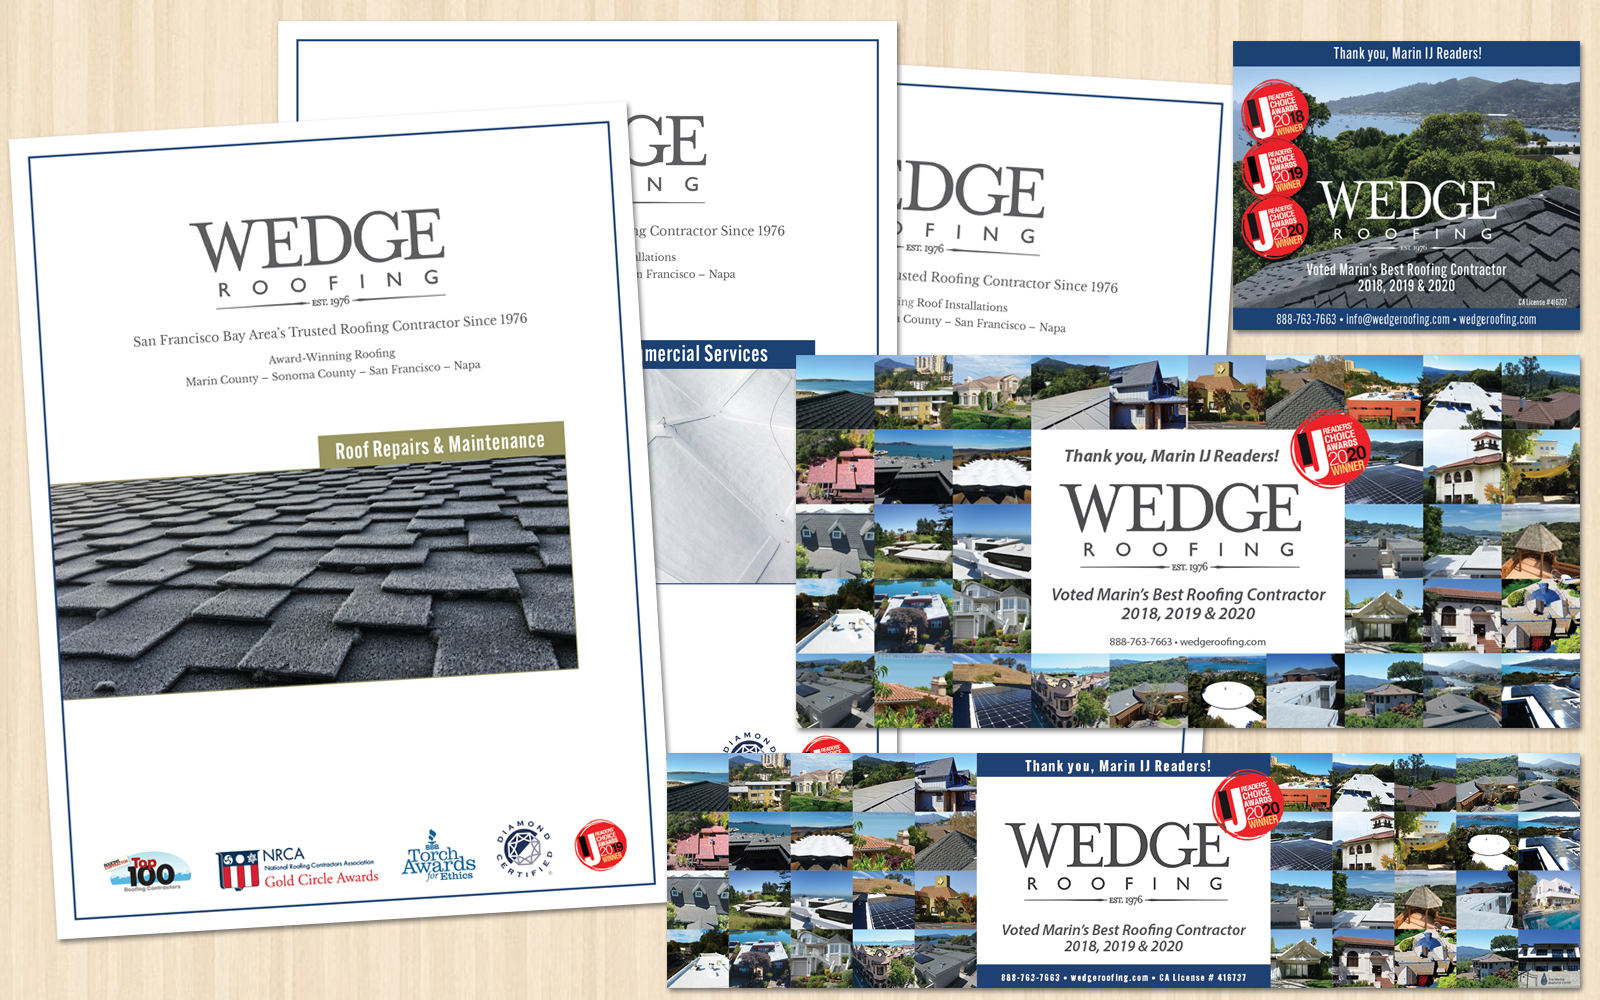 Wedge Roofing Marketing Materials And Ads